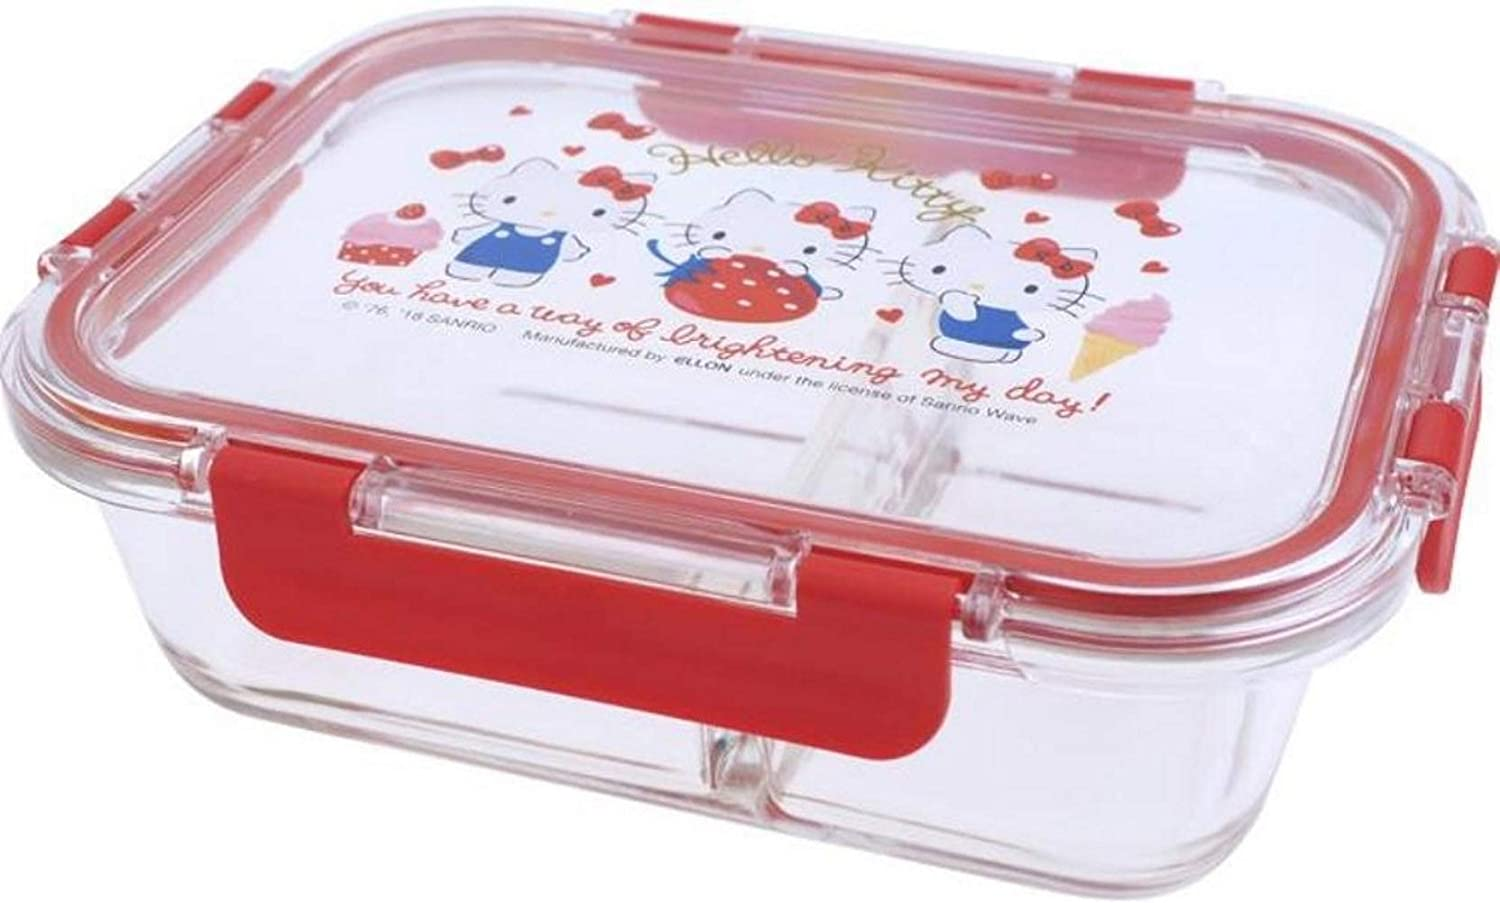 Hello Kitty Premium LEAD FREE Glass Meal Prep Container Seal Lunch Box with Compartment Microwave Oven Freezer Dishwasher Safe 1040ml